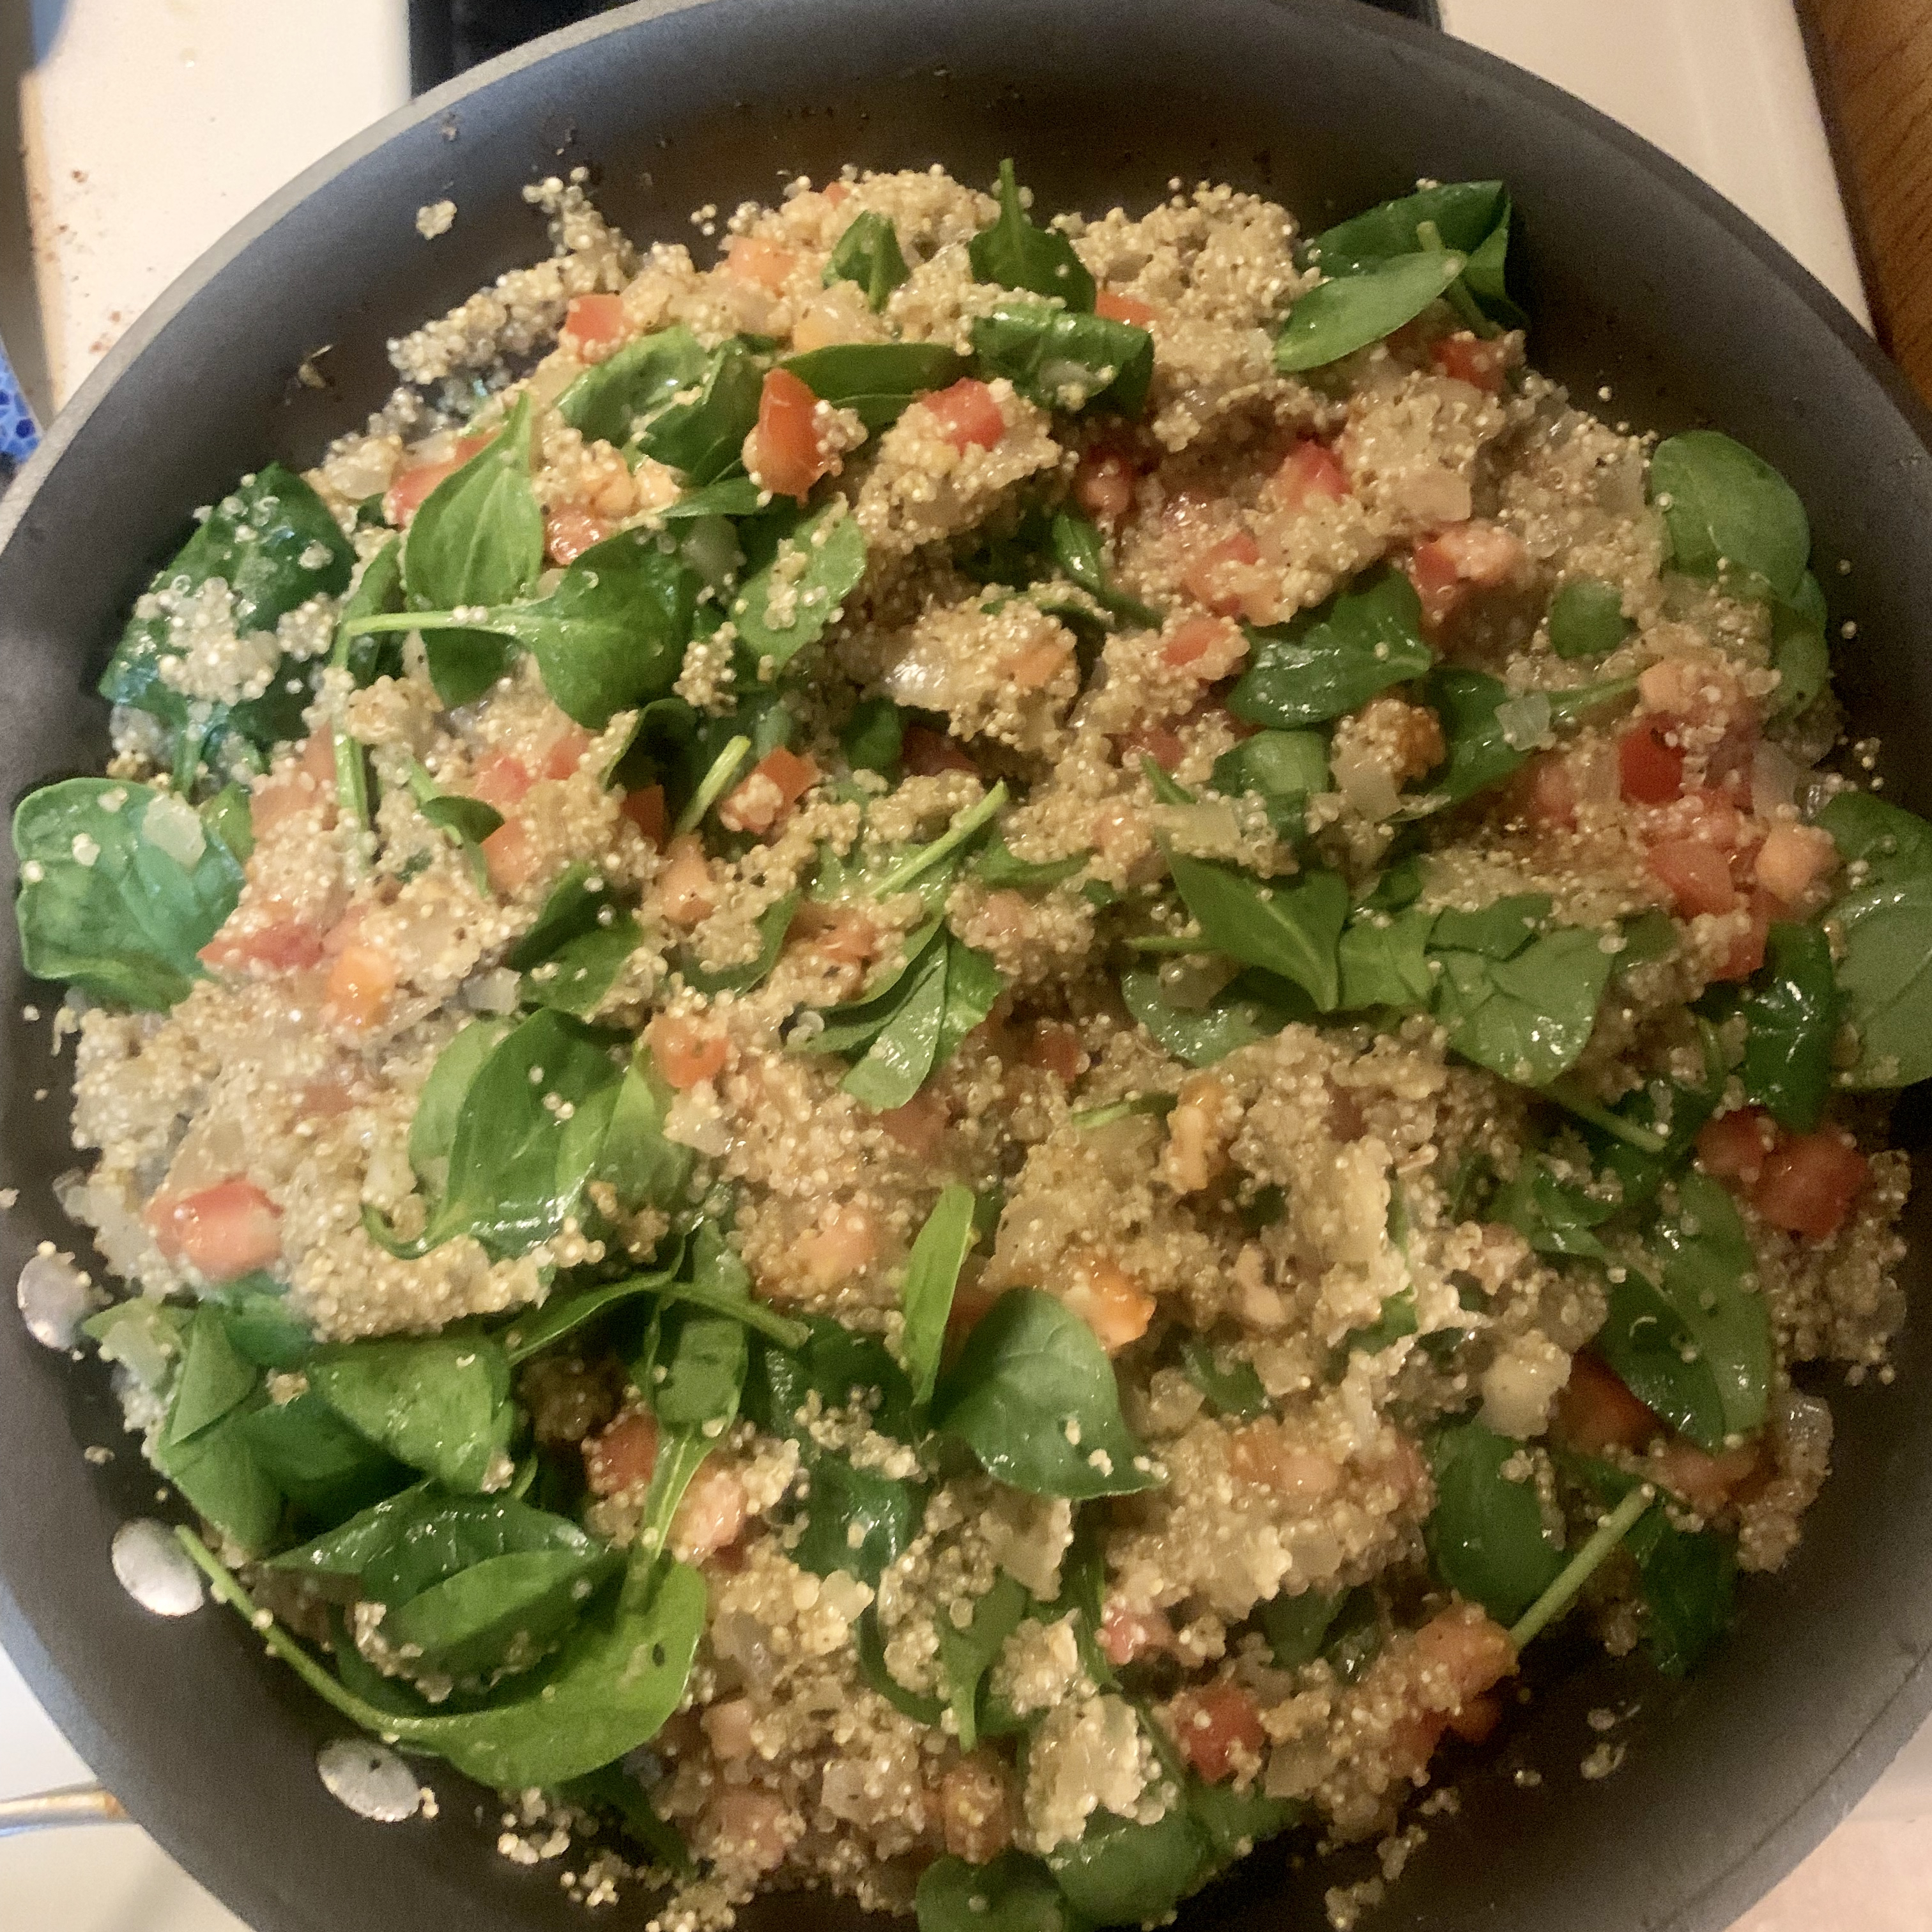 Carrot, Tomato, and Spinach Quinoa Pilaf libbyg